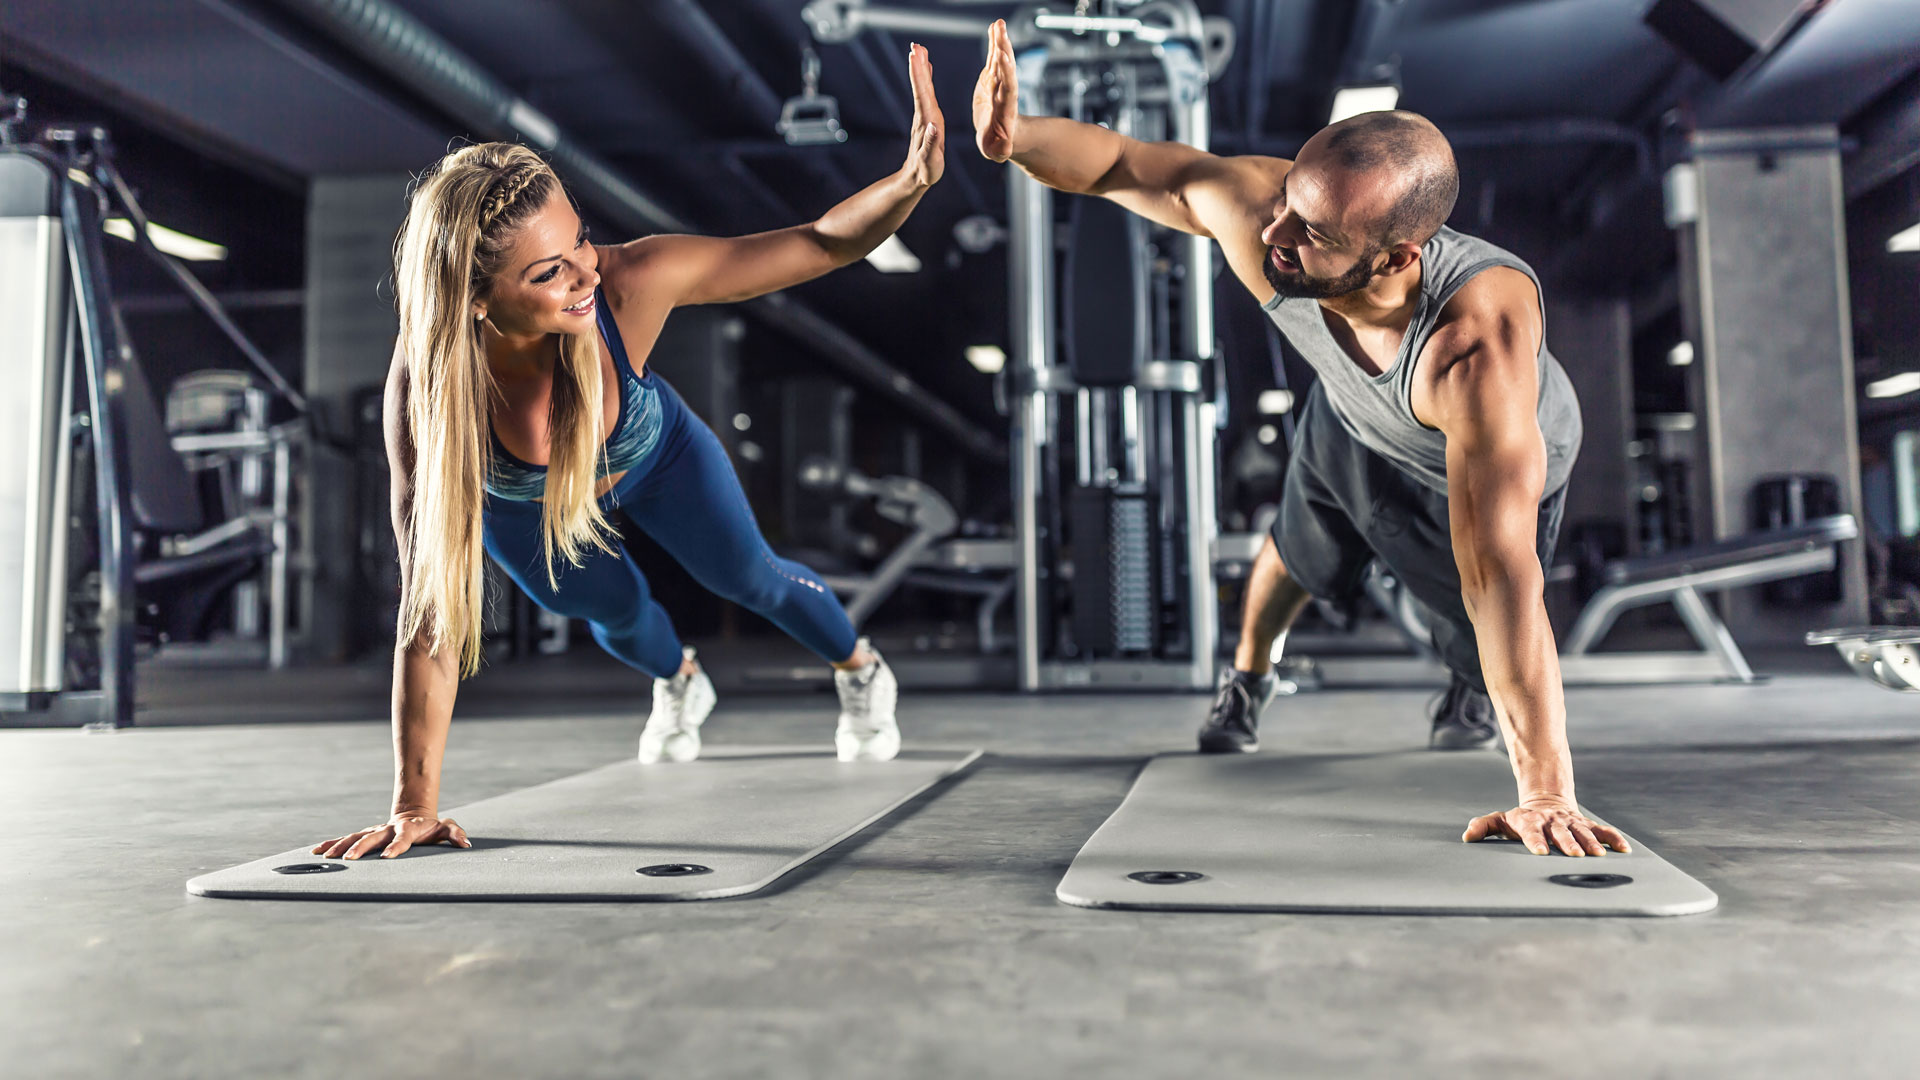 2 people working out